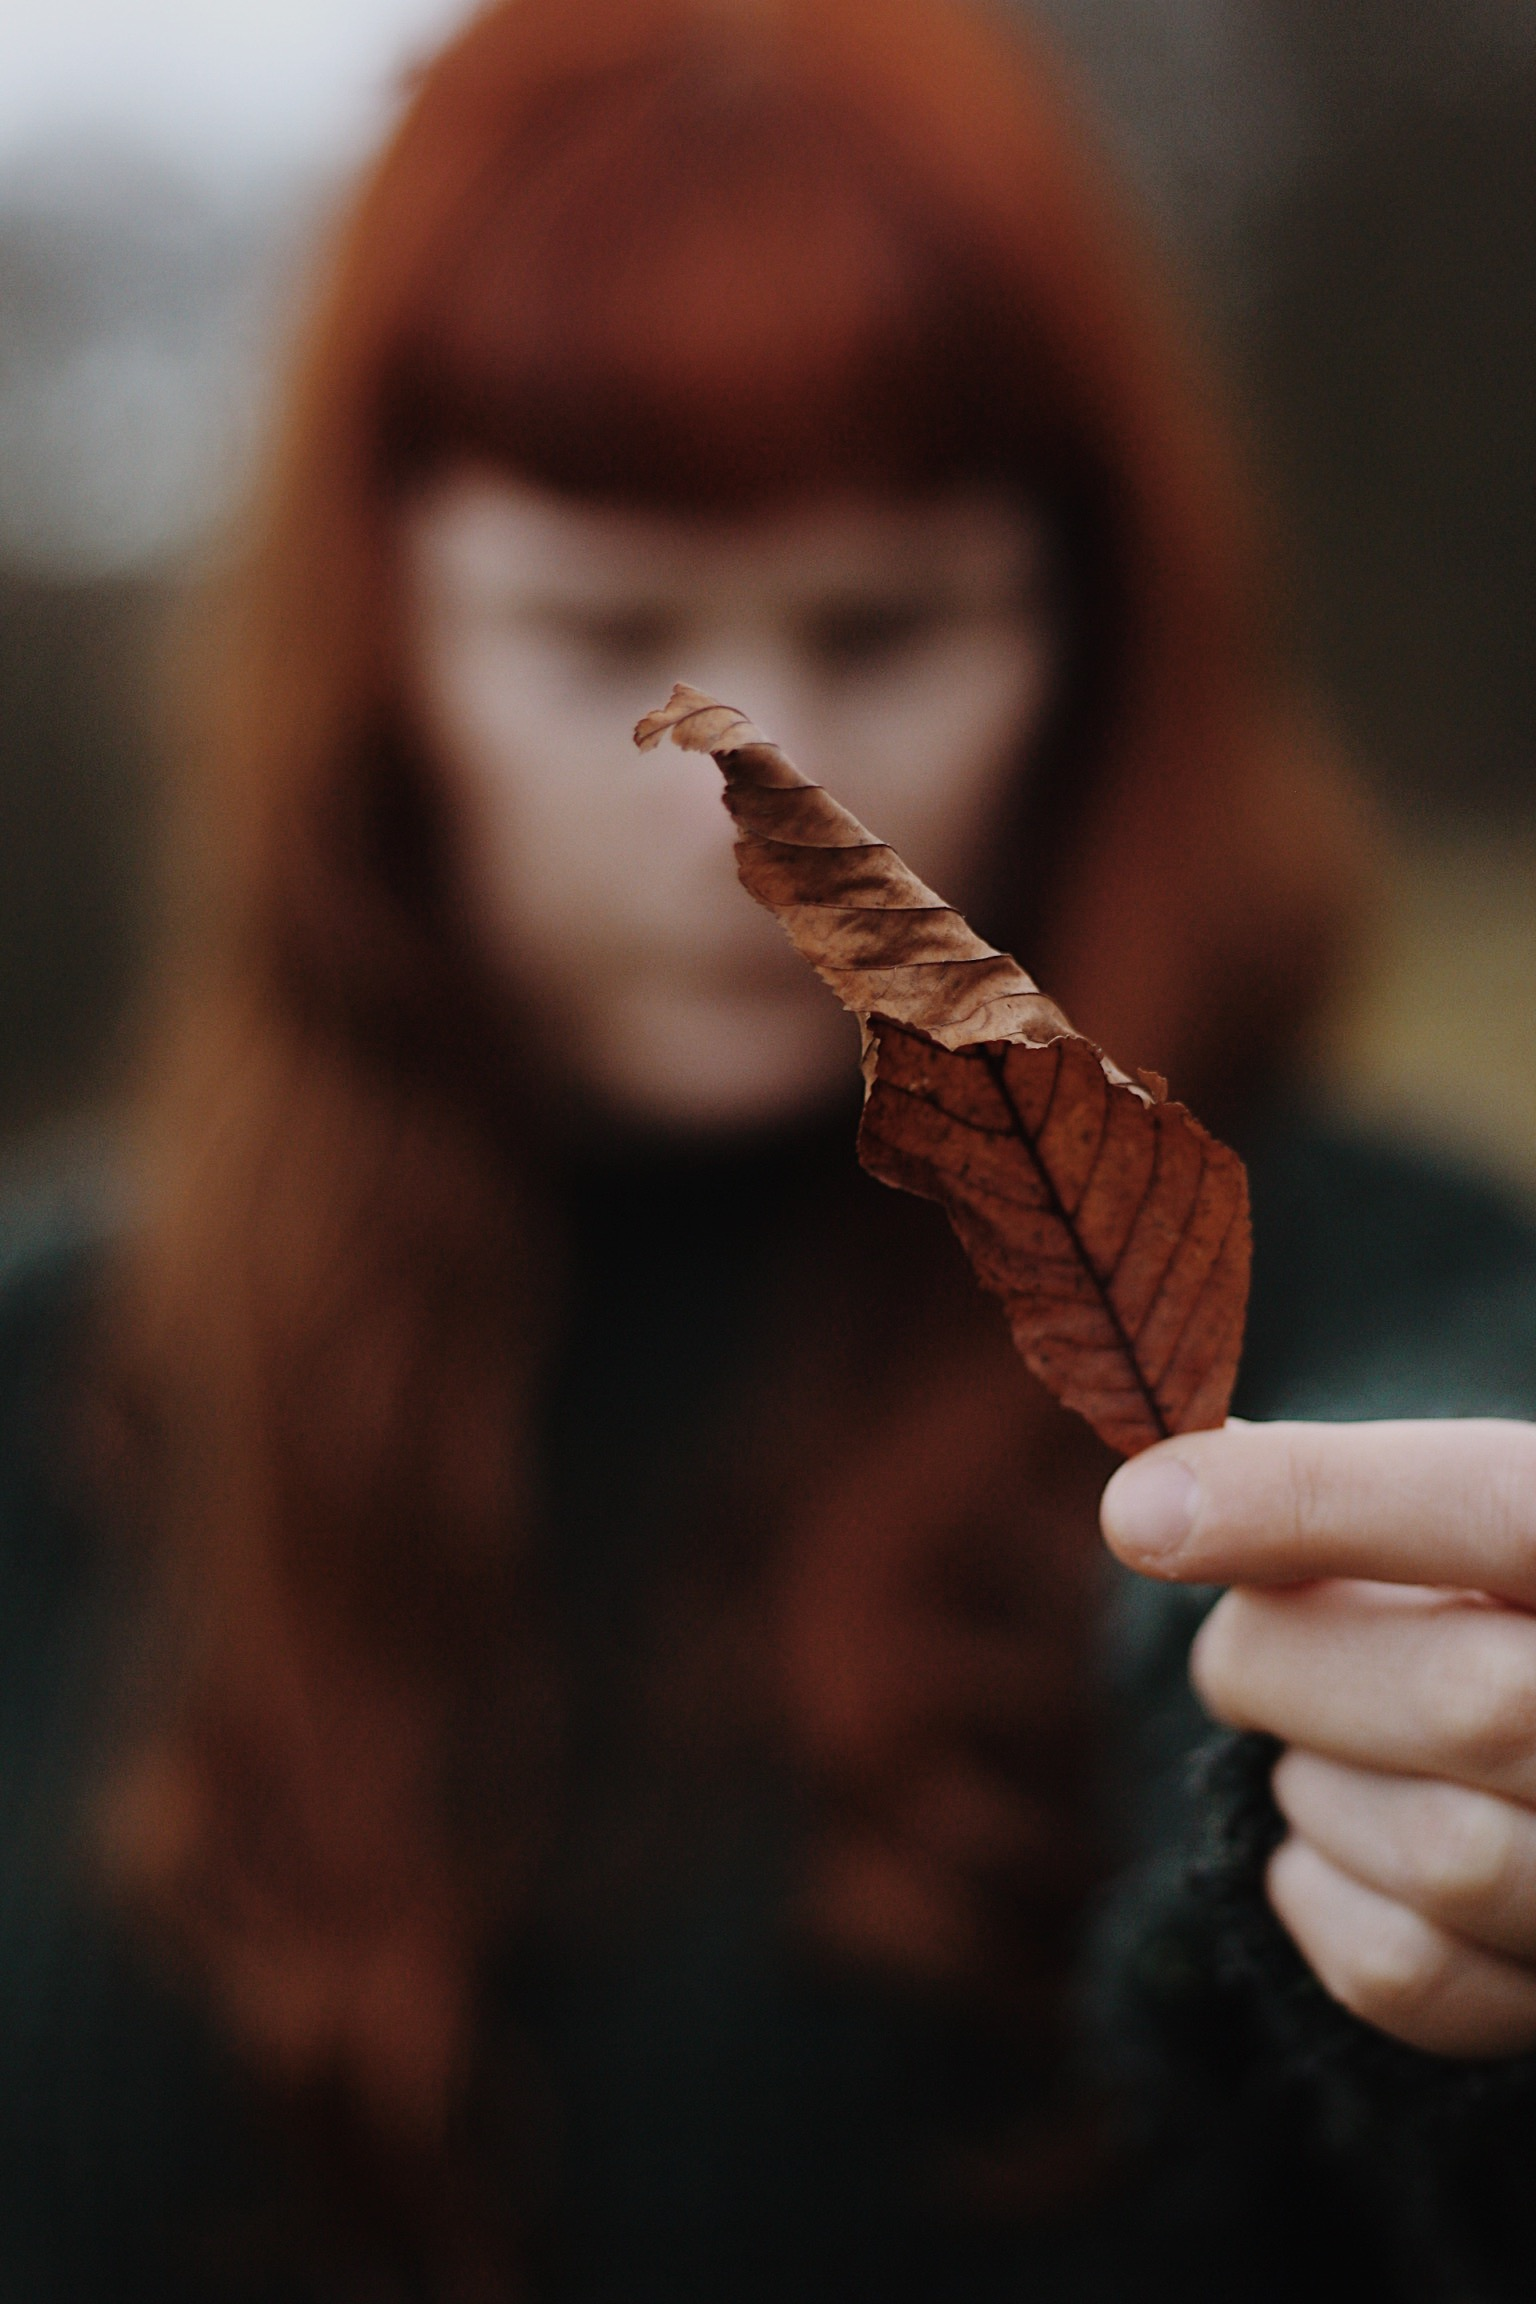 Red haired girl holding leaf